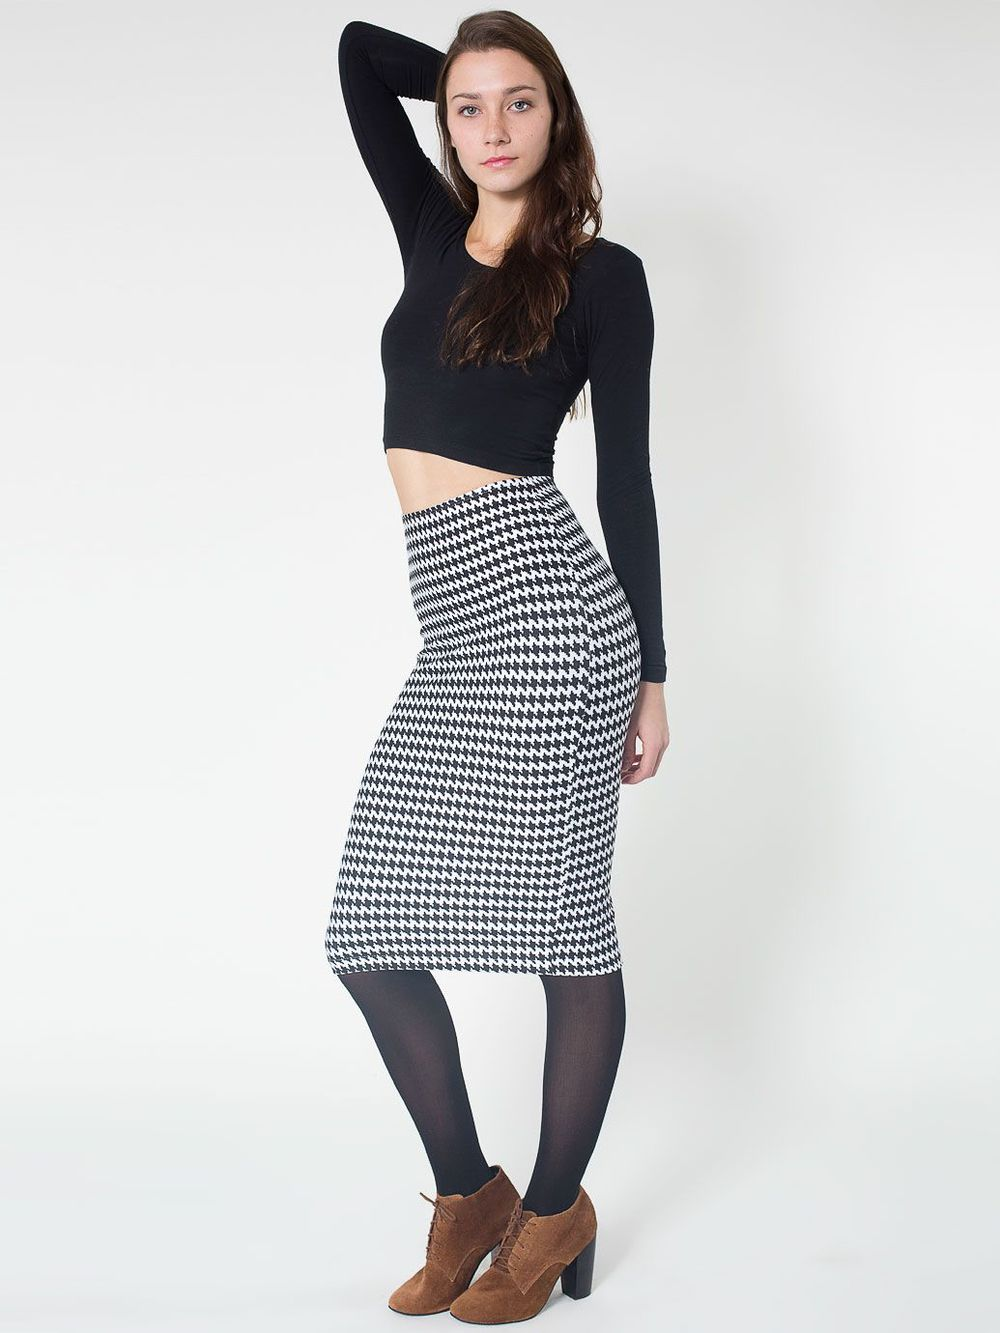 Houndstooth mid length pencil skirt. American Apparel. $42.